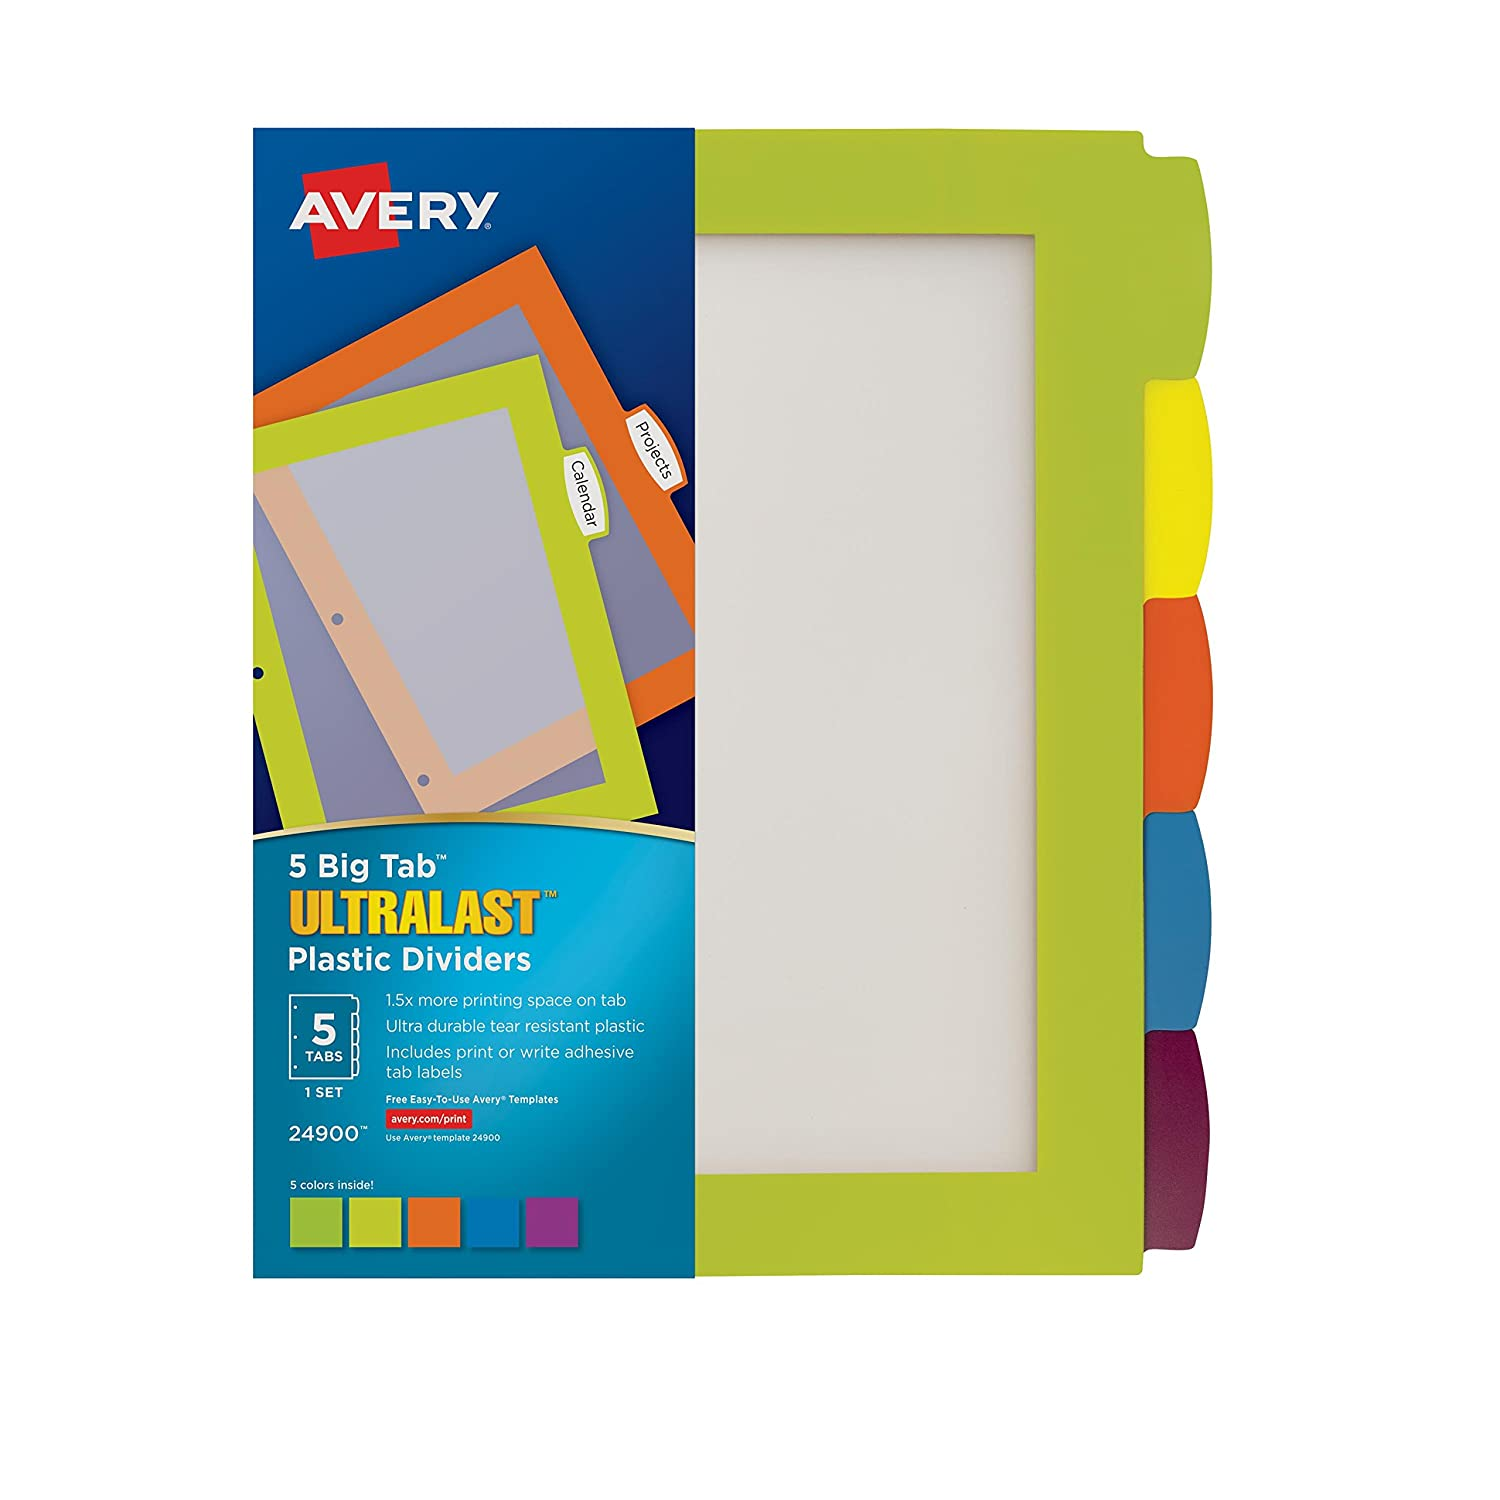 1 Set Avery Ultralast Big Tab Plastic Dividers 24900 Multicolor 5 Tabs